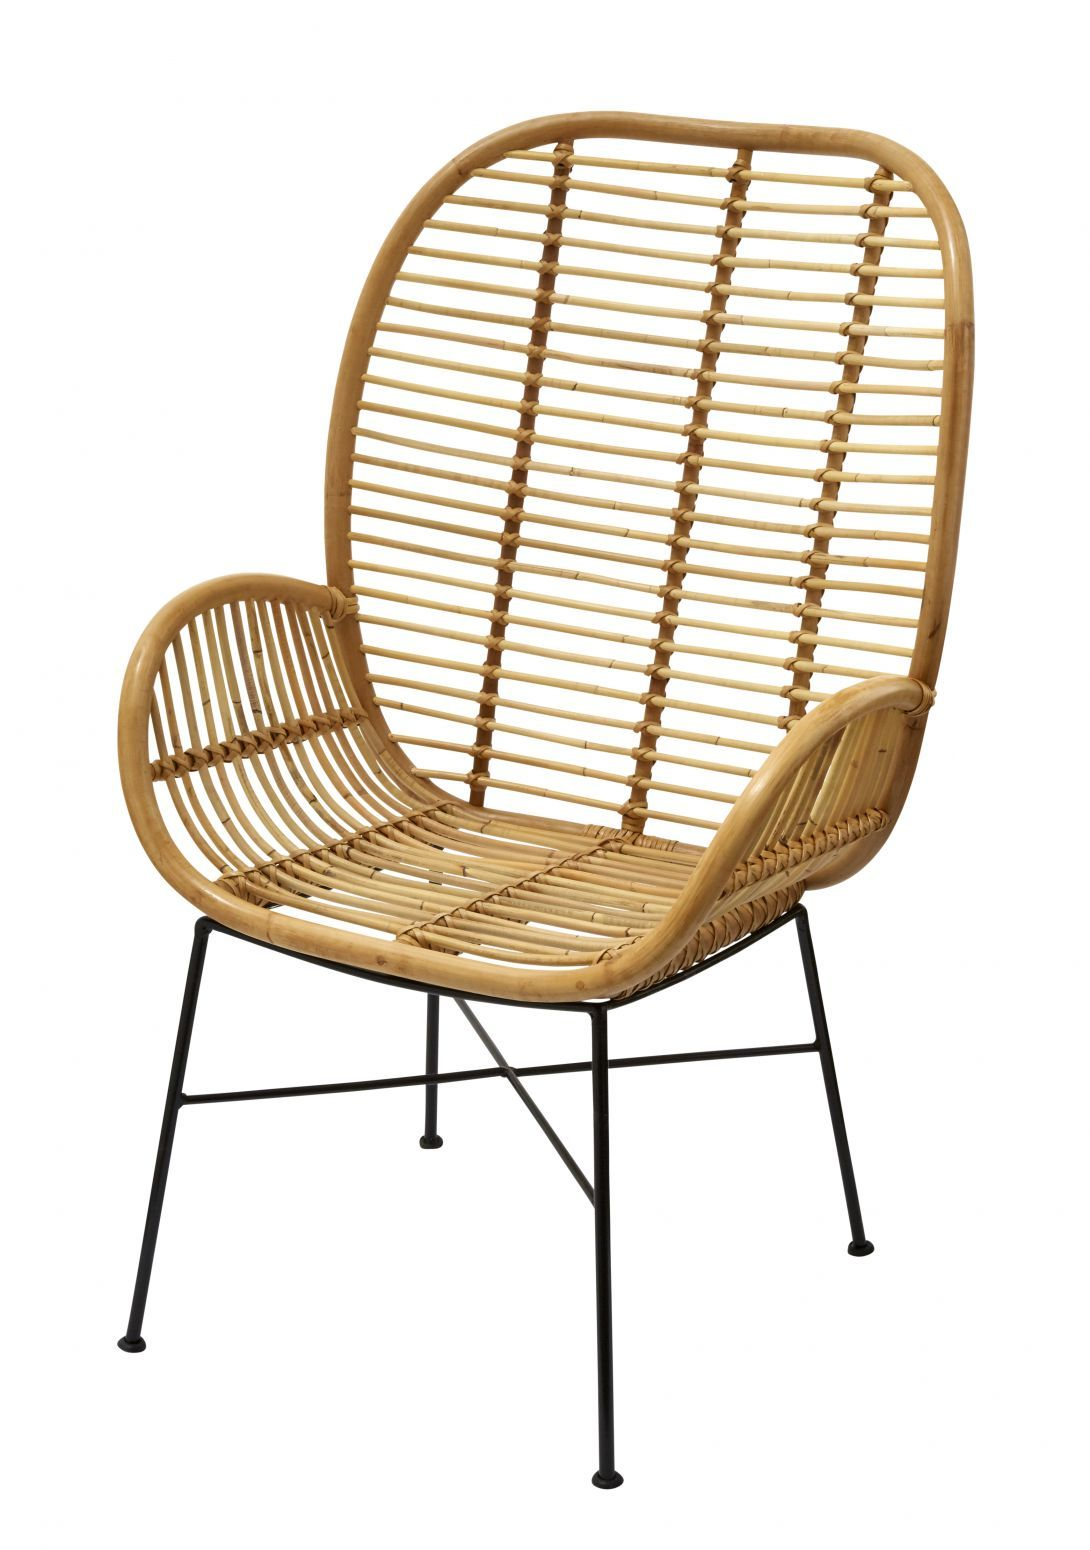 Target Newest Home Line Is Just The Thing For Spring Rattan